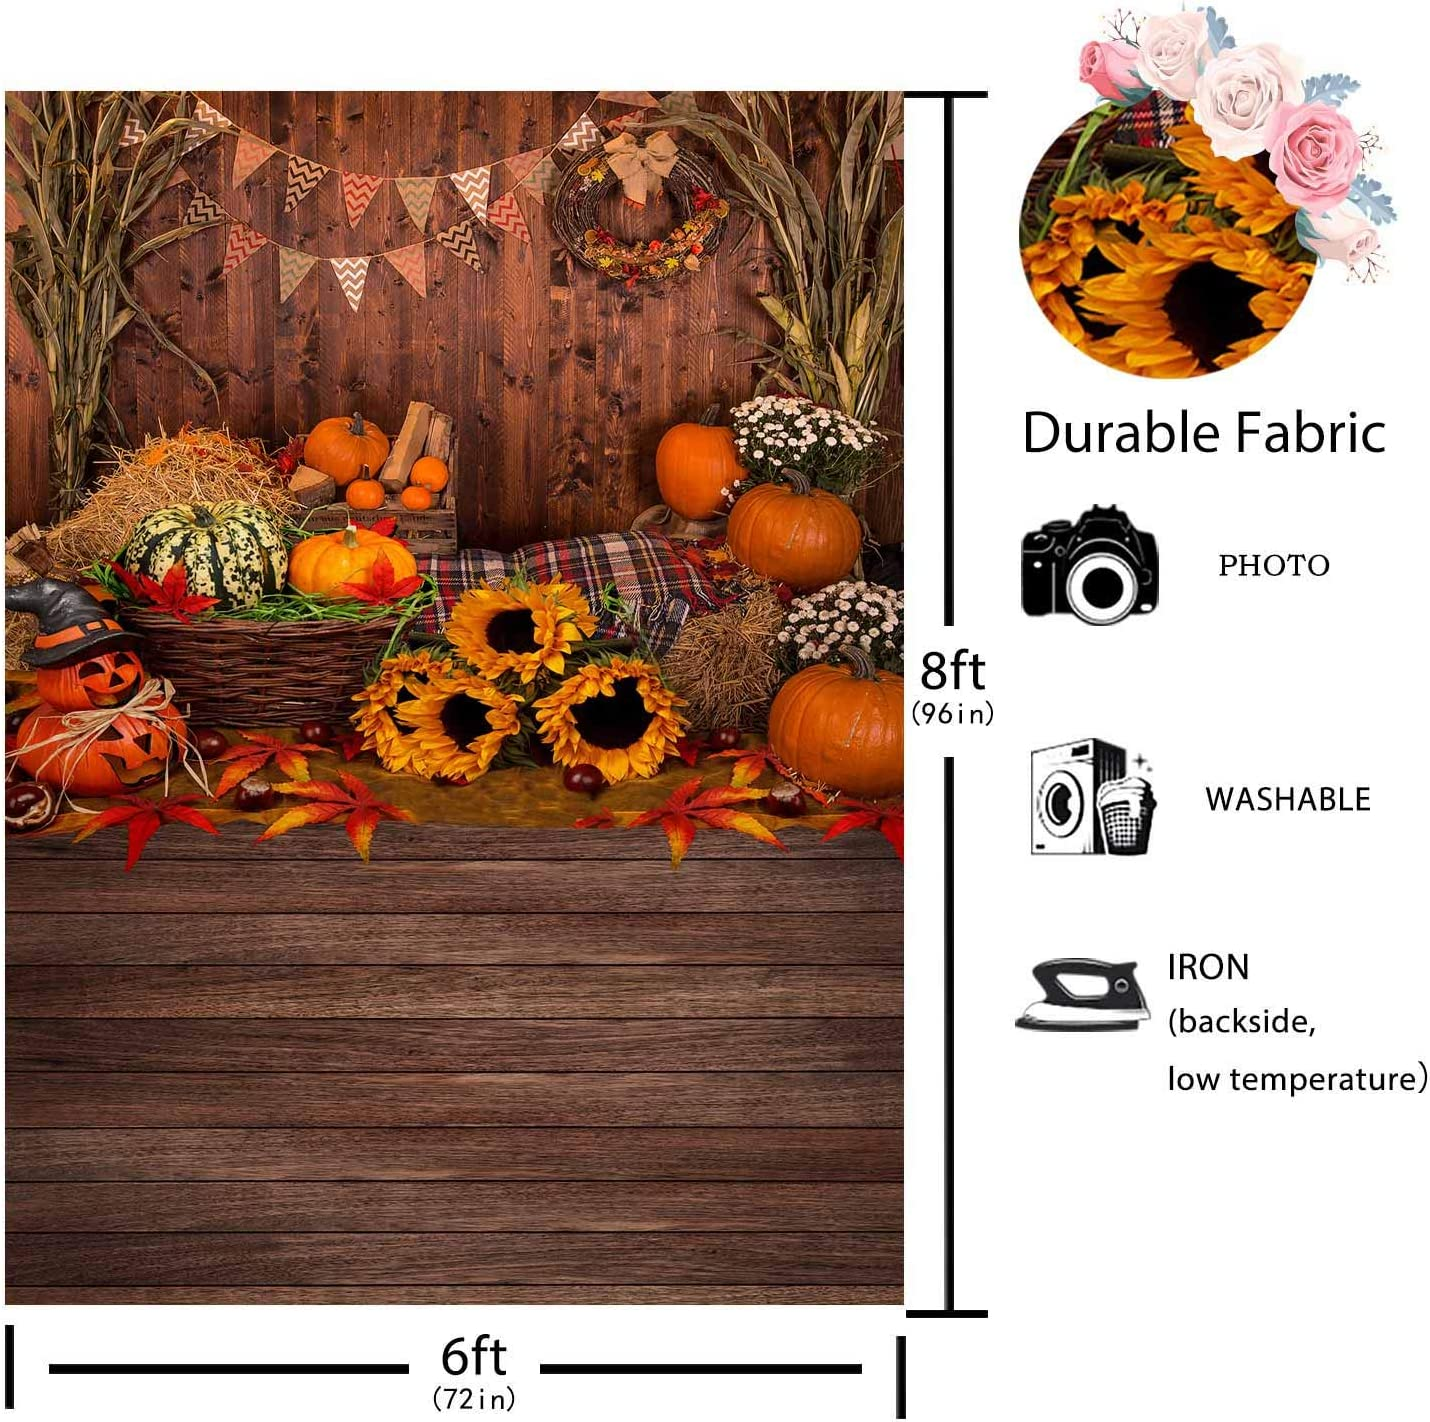 Funnytree 10x8ft Durable Fabric Fall Thanksgiving Photography Backdrop No Wrinkles Rustic Wooden Floor Barn Harvest Background Autumn Pumpkins Maple Leaves Baby Portrait Party Photo Studio Booth Props